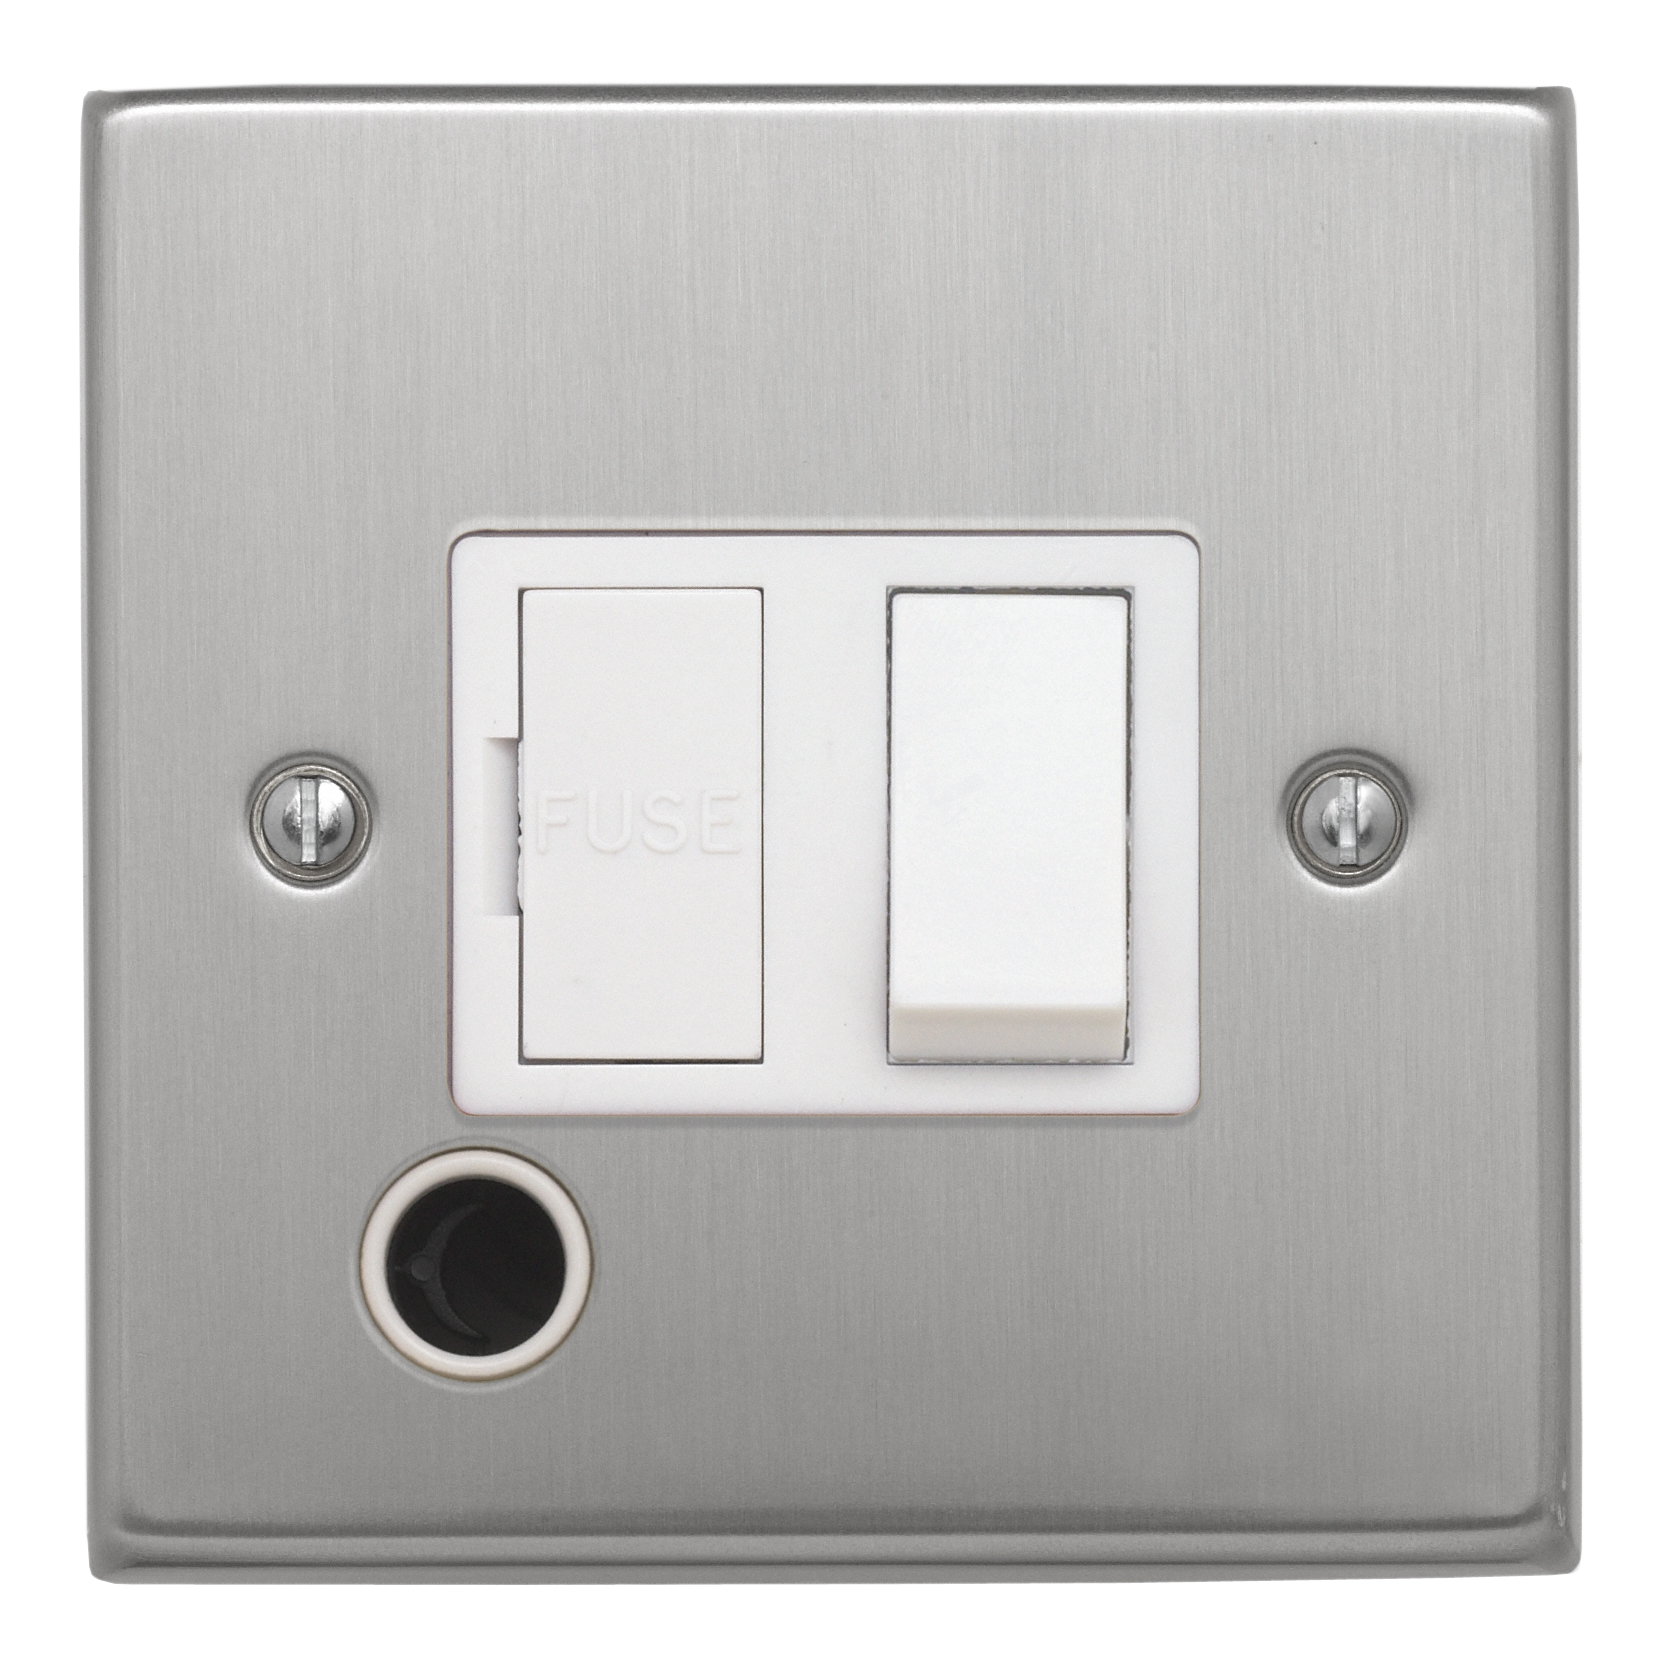 Wiring An Outlet White Black